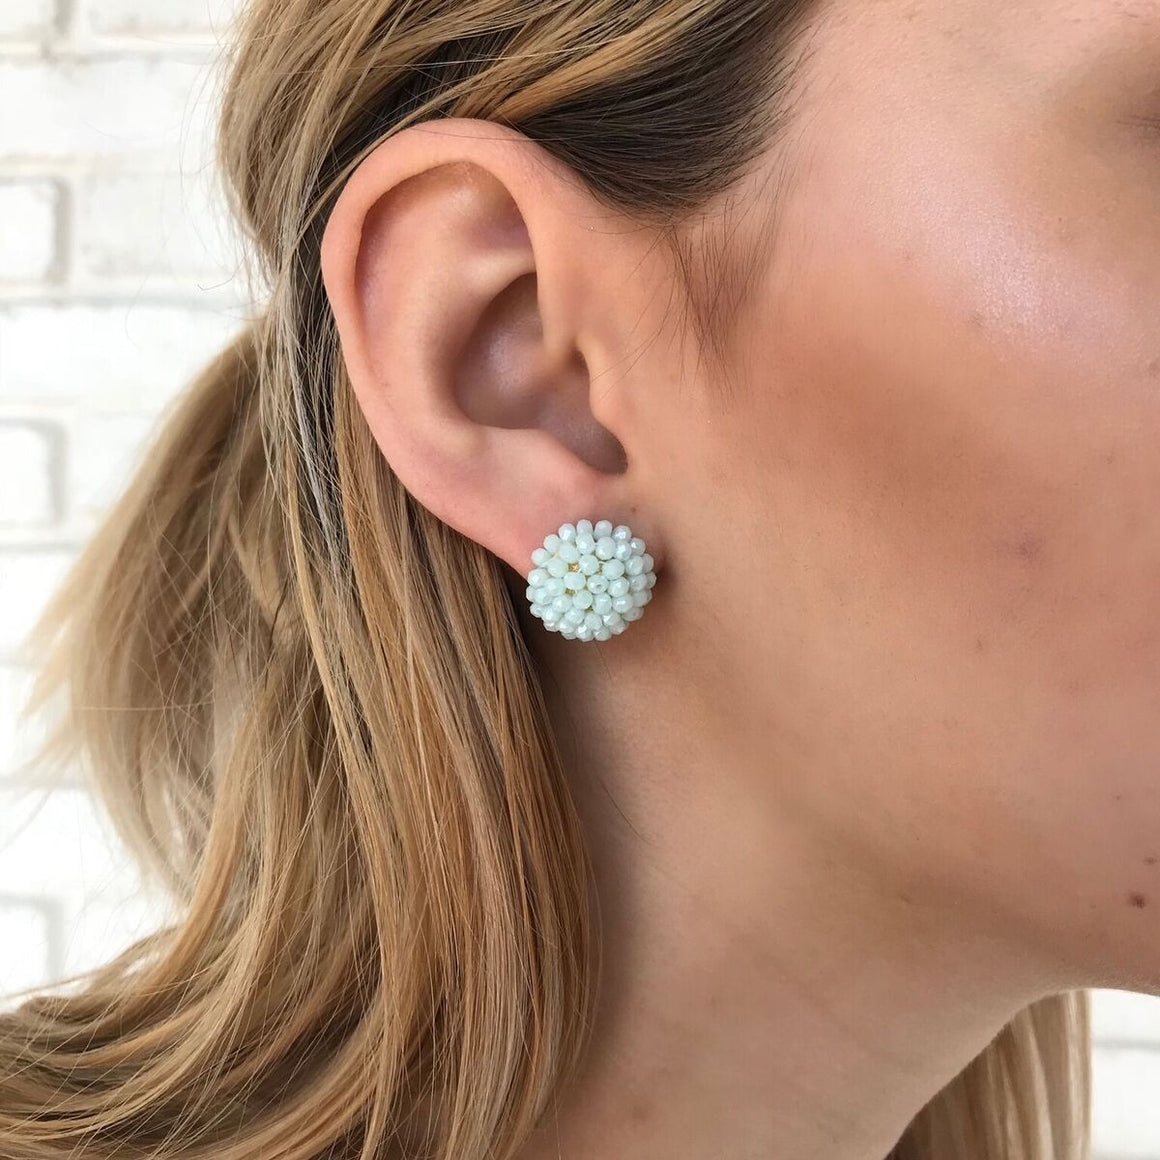 In Full Bloom Beaded Stud Earrings in Mint - Dainty Hooligan